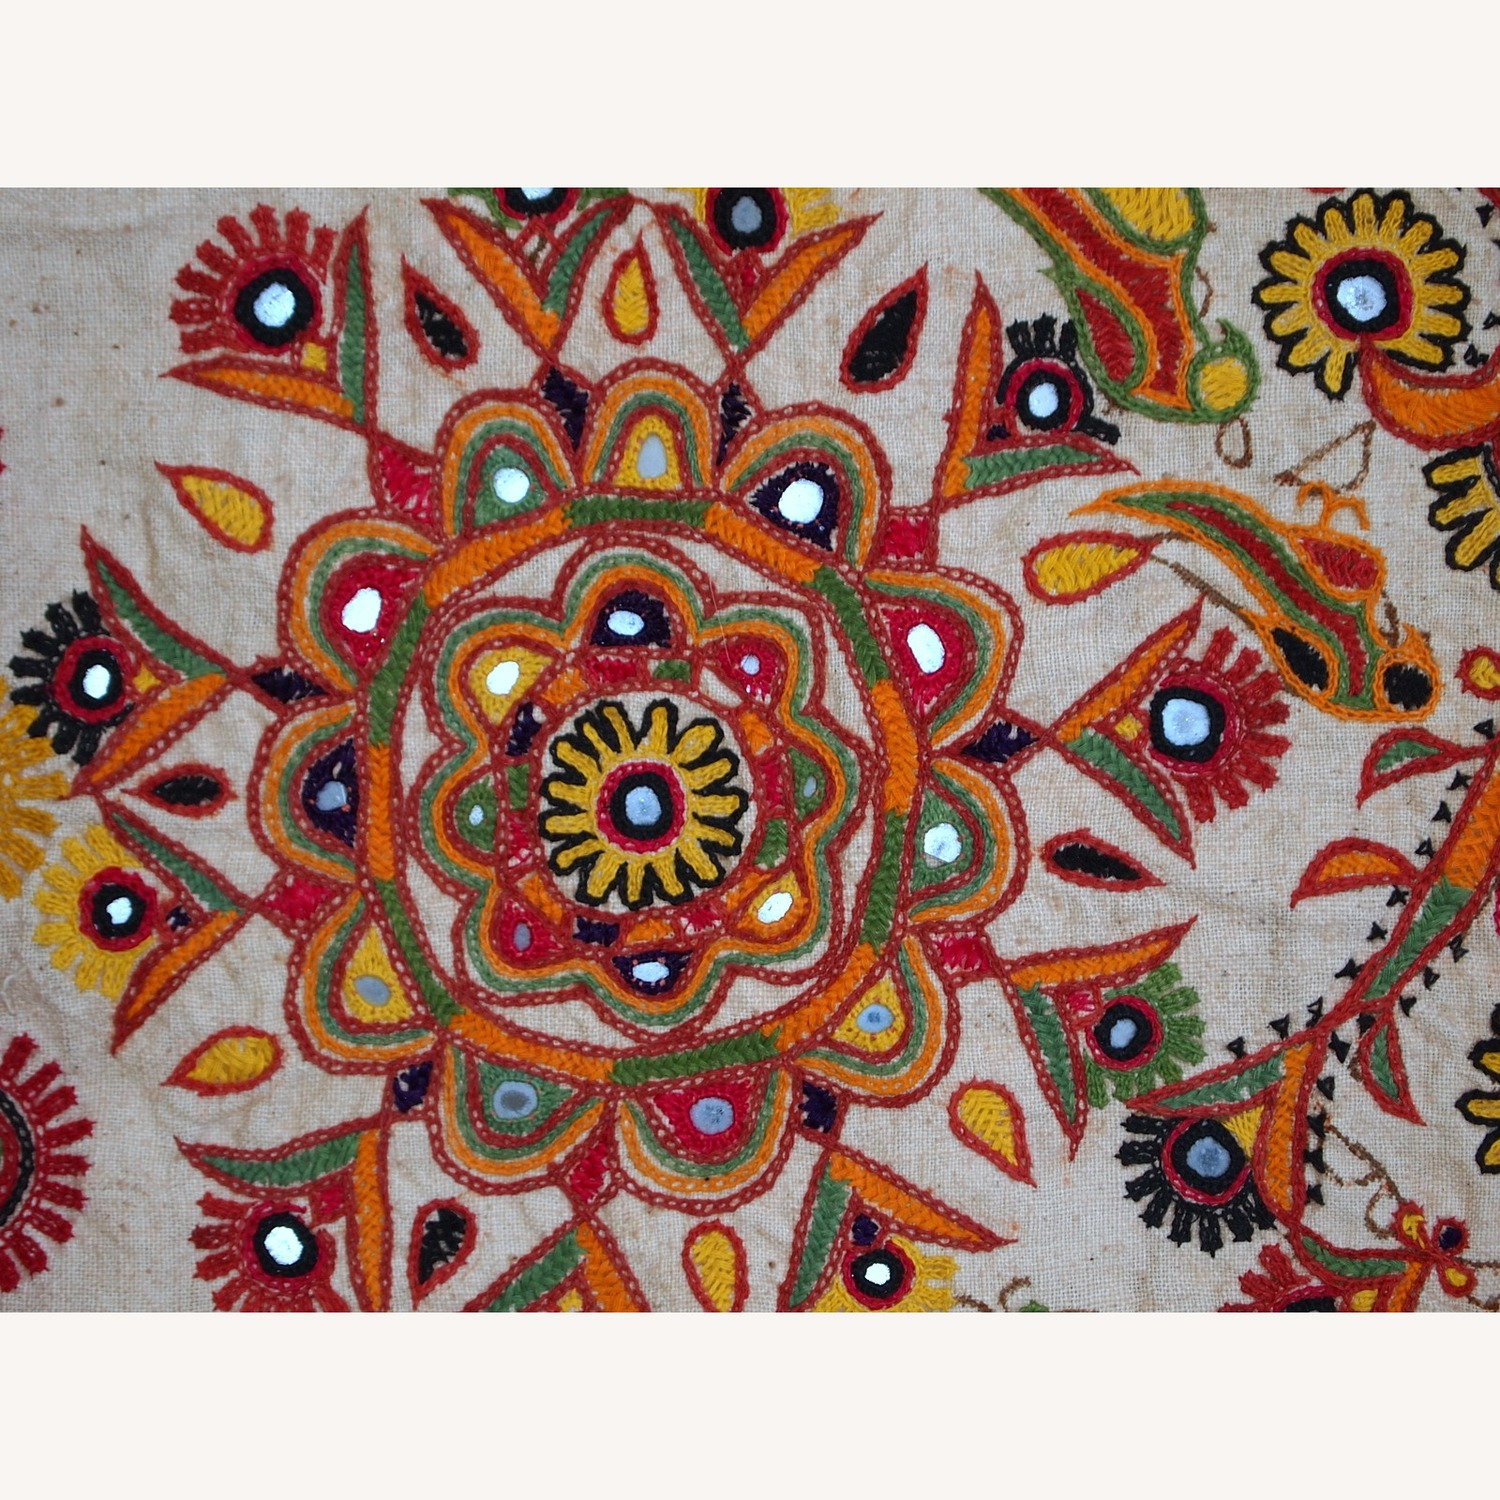 Handmade Indian Wall Hanging Embroidered Tapestry - image-11